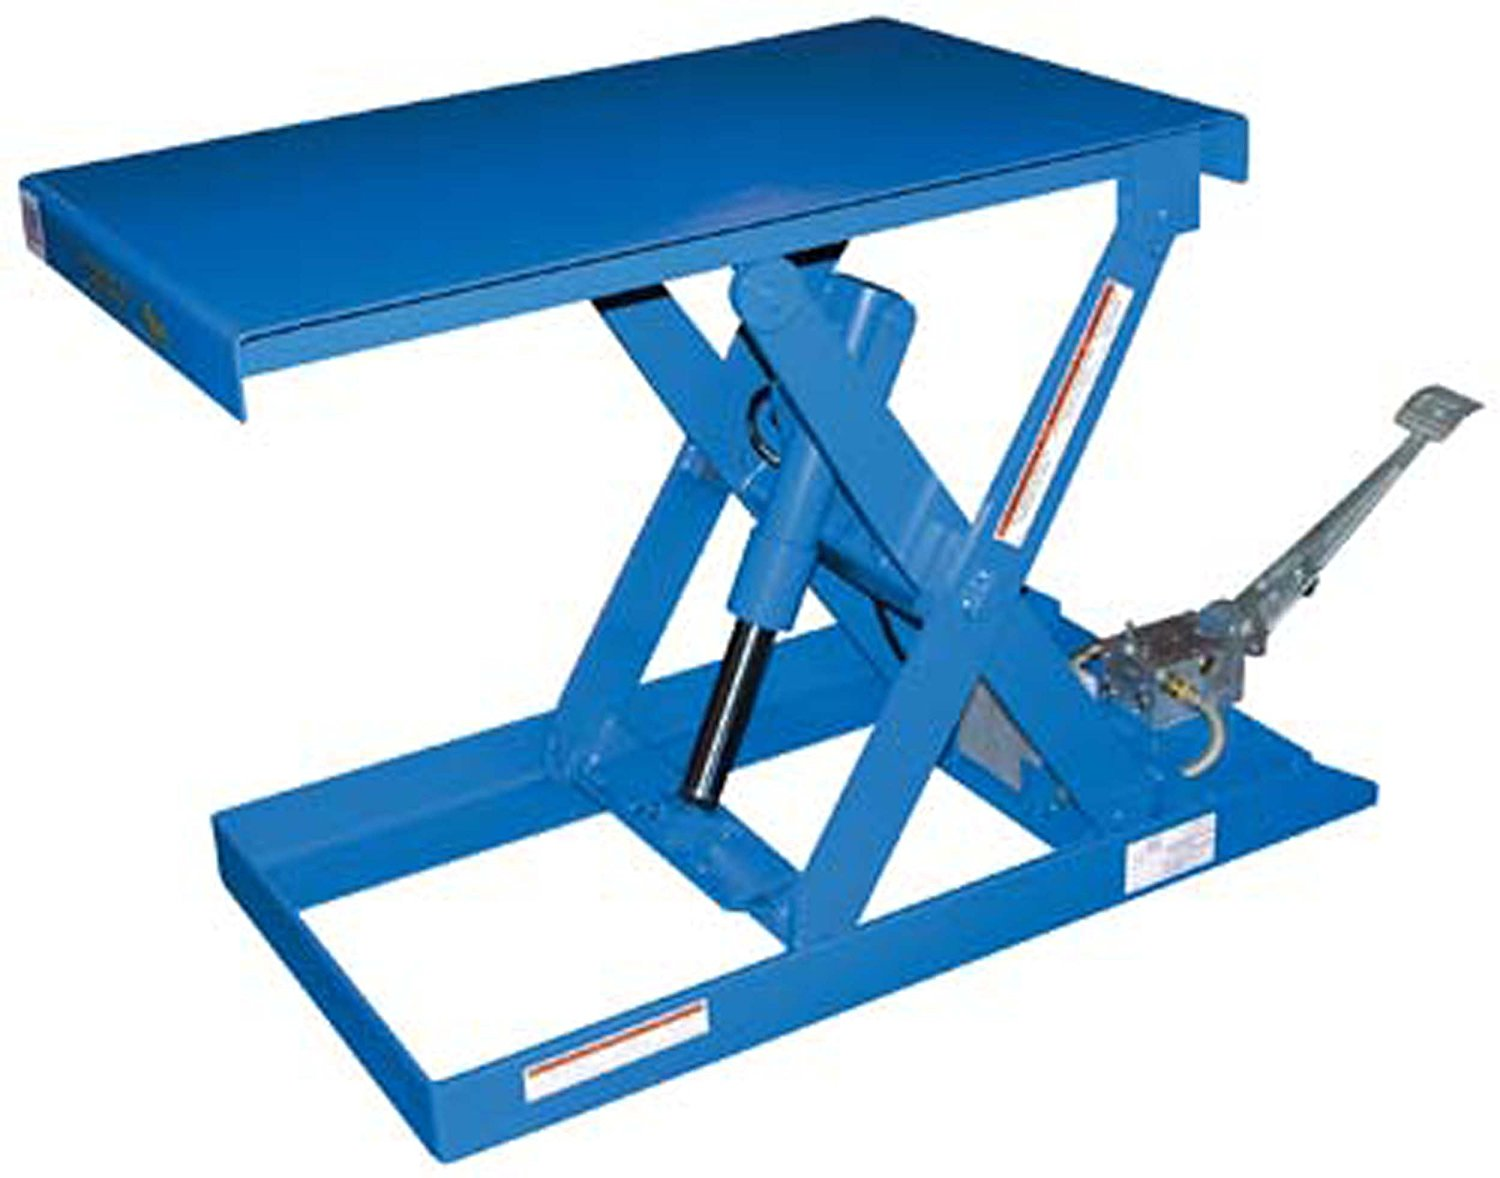 """IHS SCTAB-500 Steel Foot Pump Scissor Lift Table with Painted Blue Finish, 500 lbs Capacity, 33"""" Length x 20"""" Width Platform, 6"""" - 28"""" Height"""